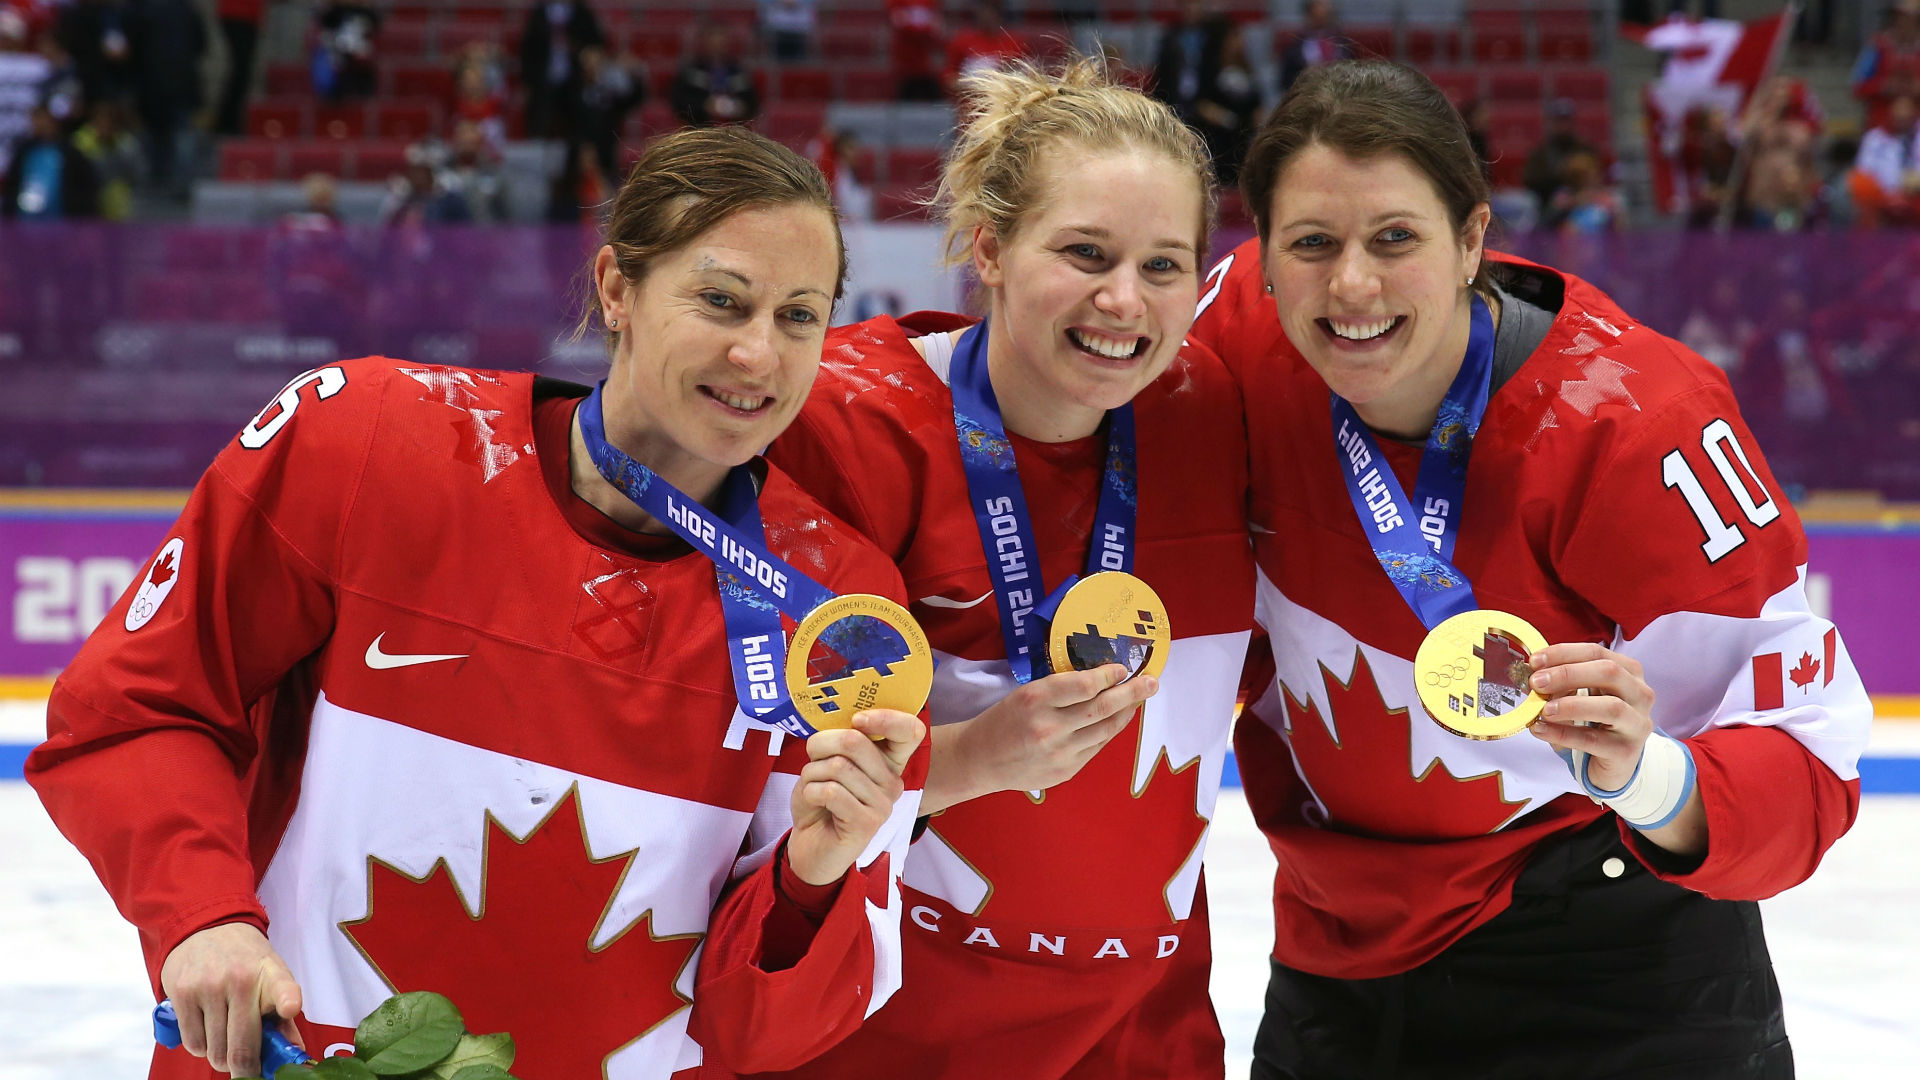 SN Q&A With 2018 HHOF Inductee Jayna Hefford On Her Career And CWHL, NWHL Merger